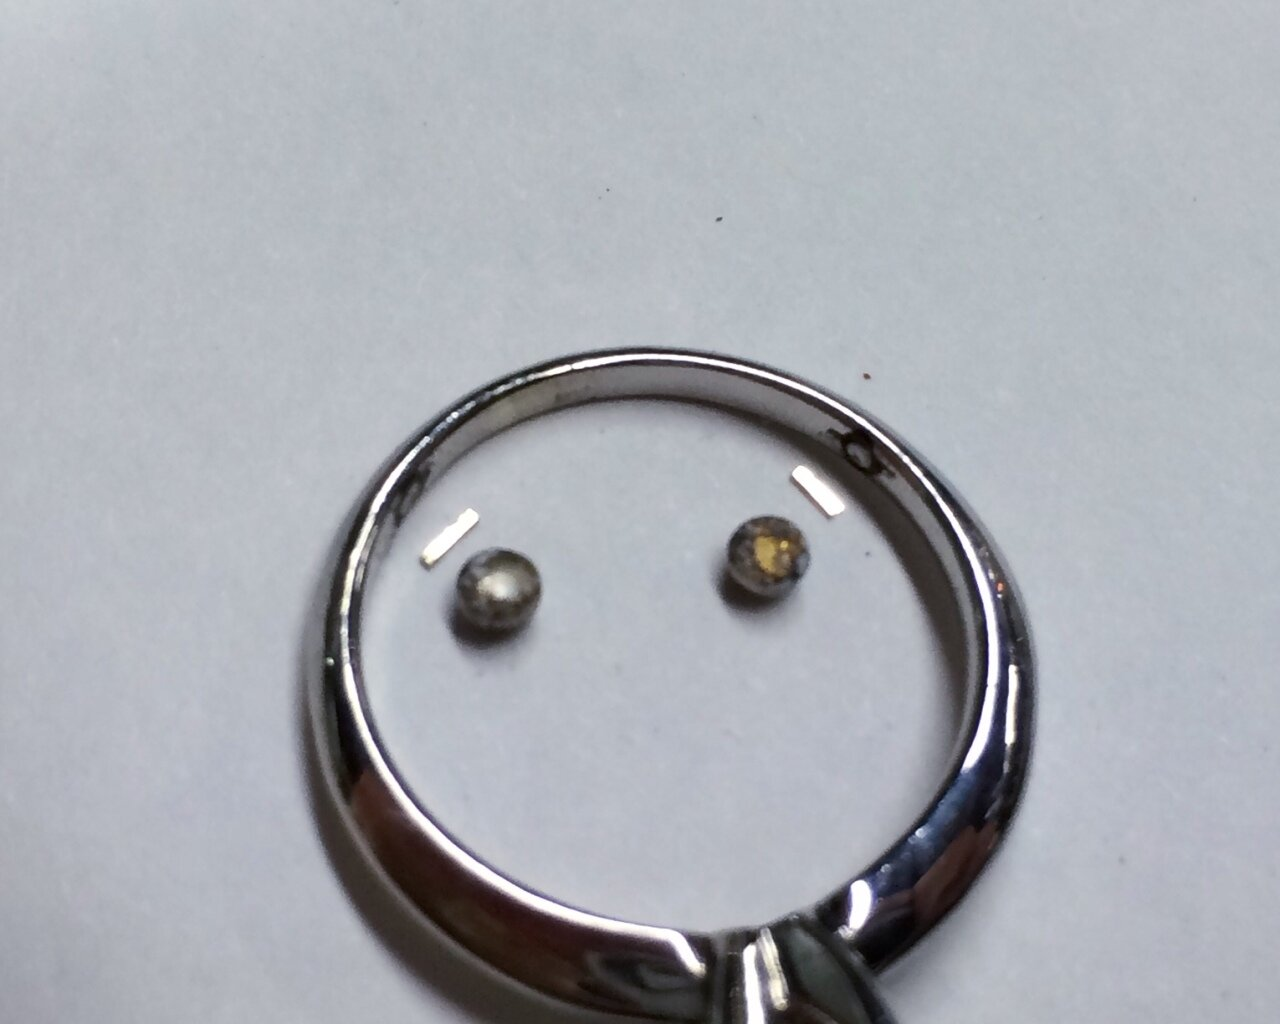 Next to the sizing balls are small strips of solder that will be heated in order to attach the balls to the ring.